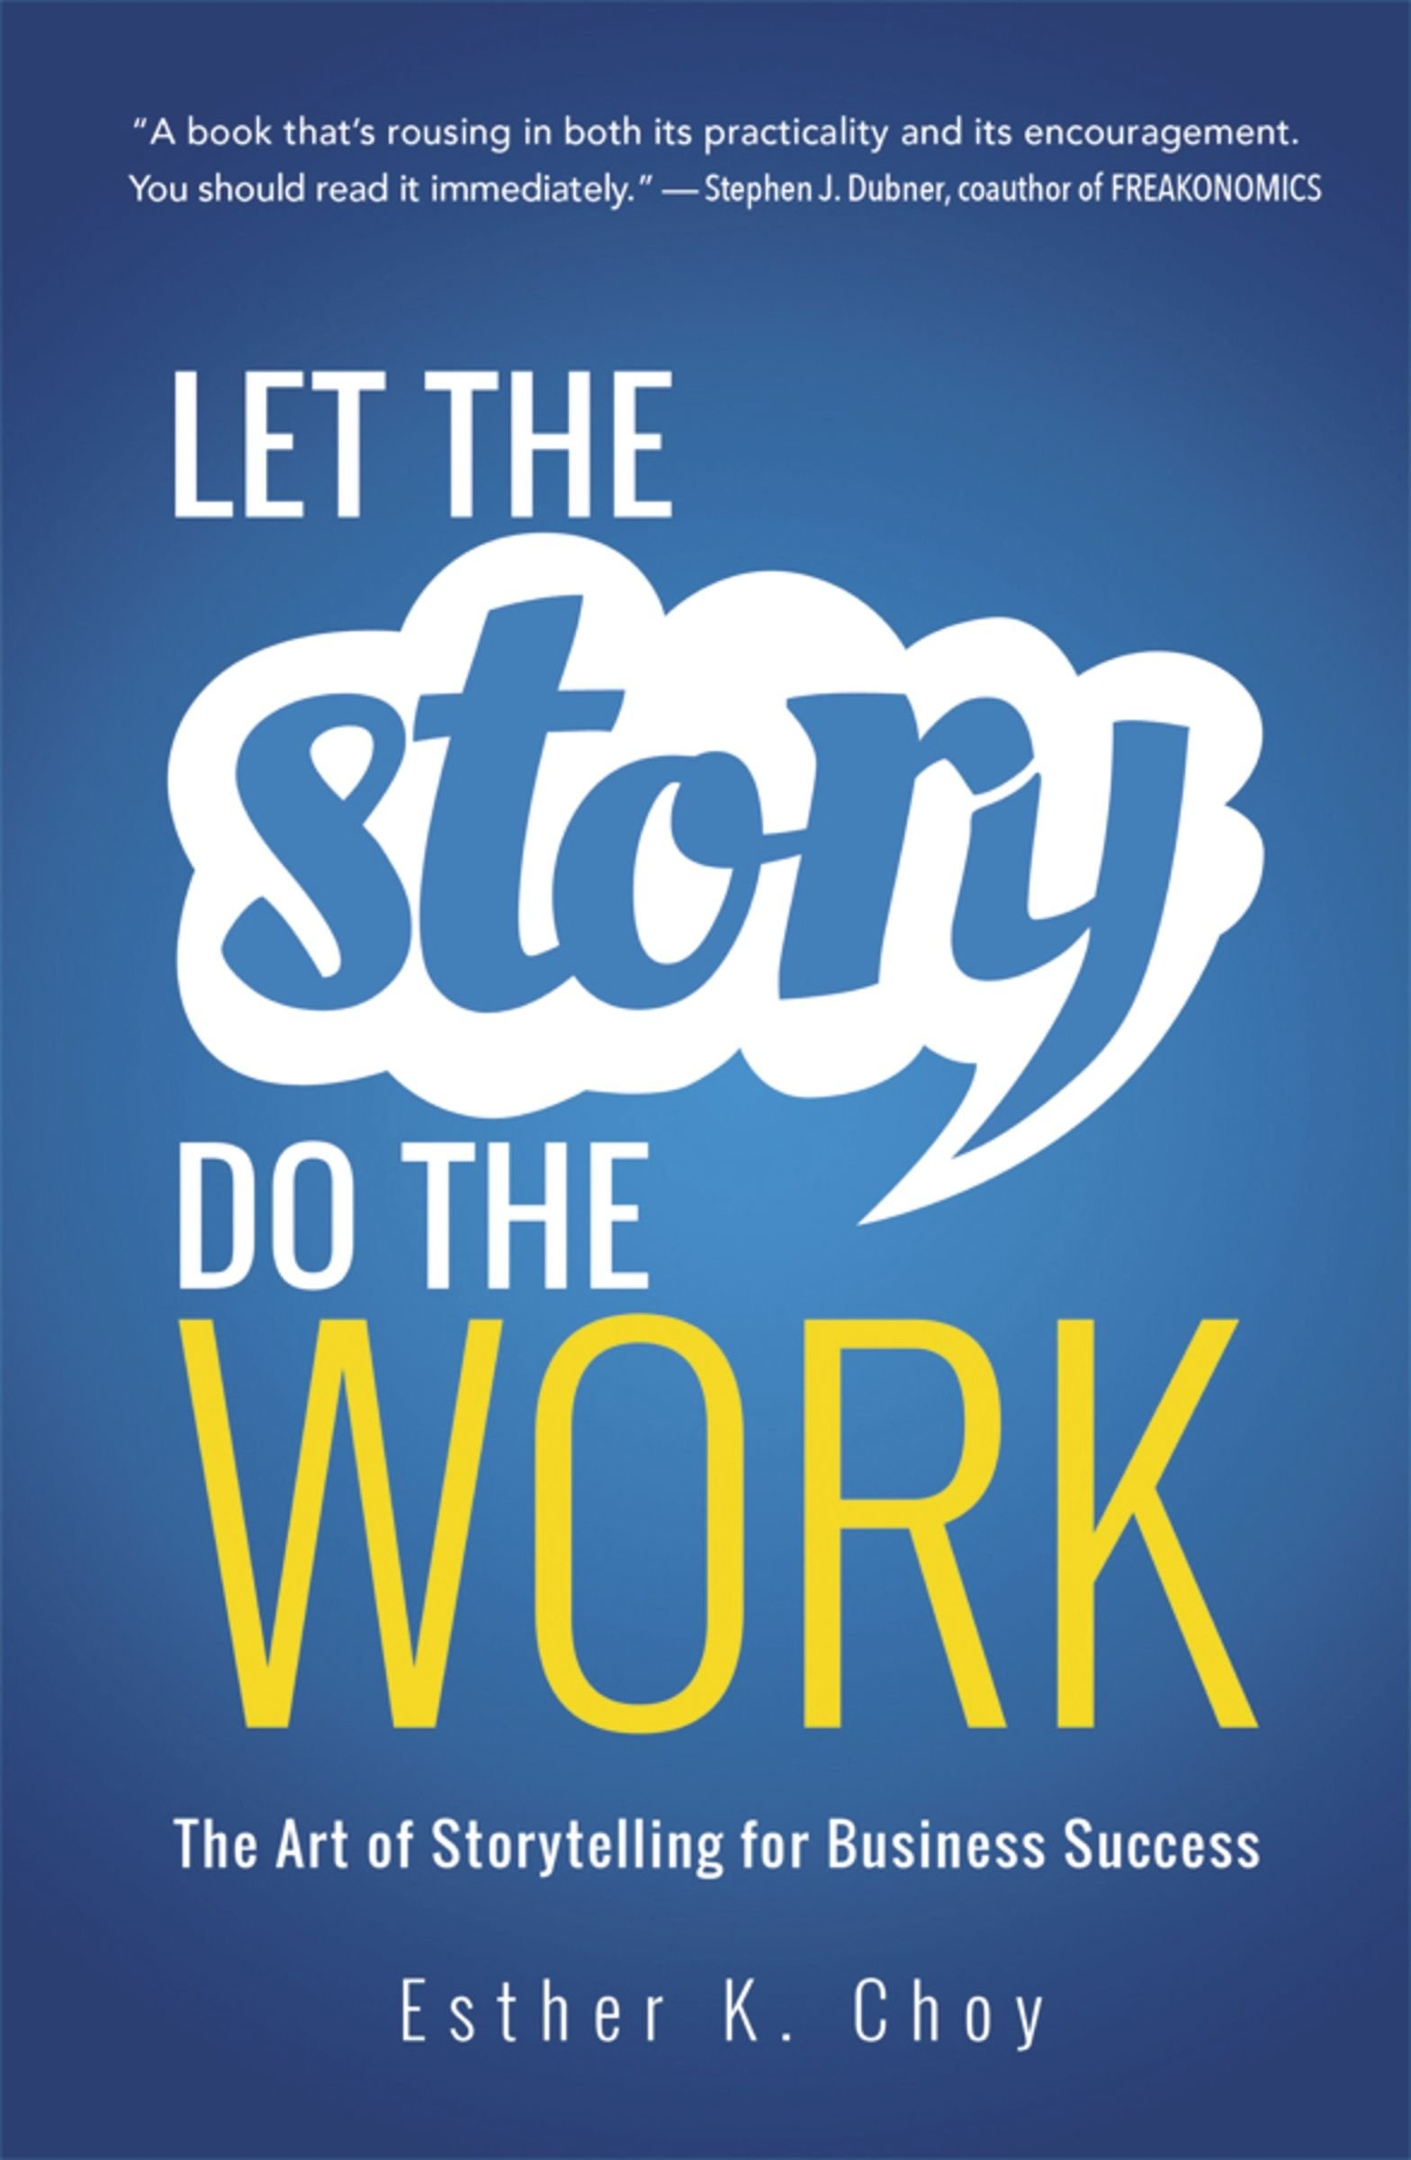 Esther K. Choy – Let The Story